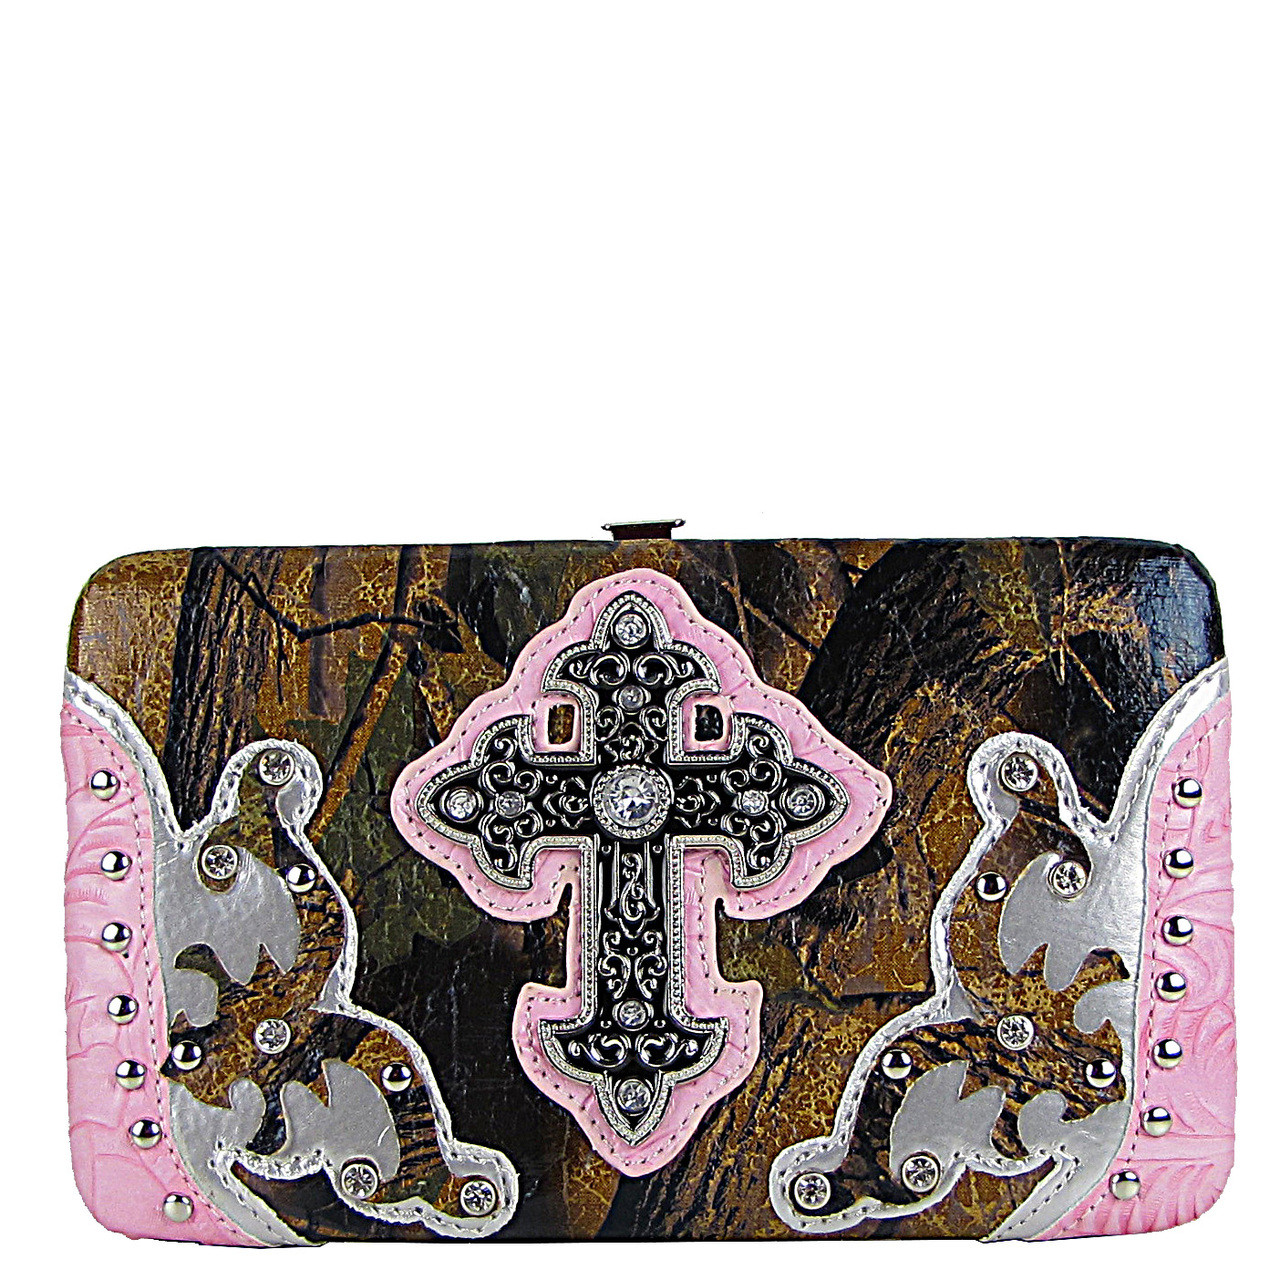 LIGHT PINK STUDDED METALLIC CAMO CROSS FLAT THICK WALLET FW2-04107LPK